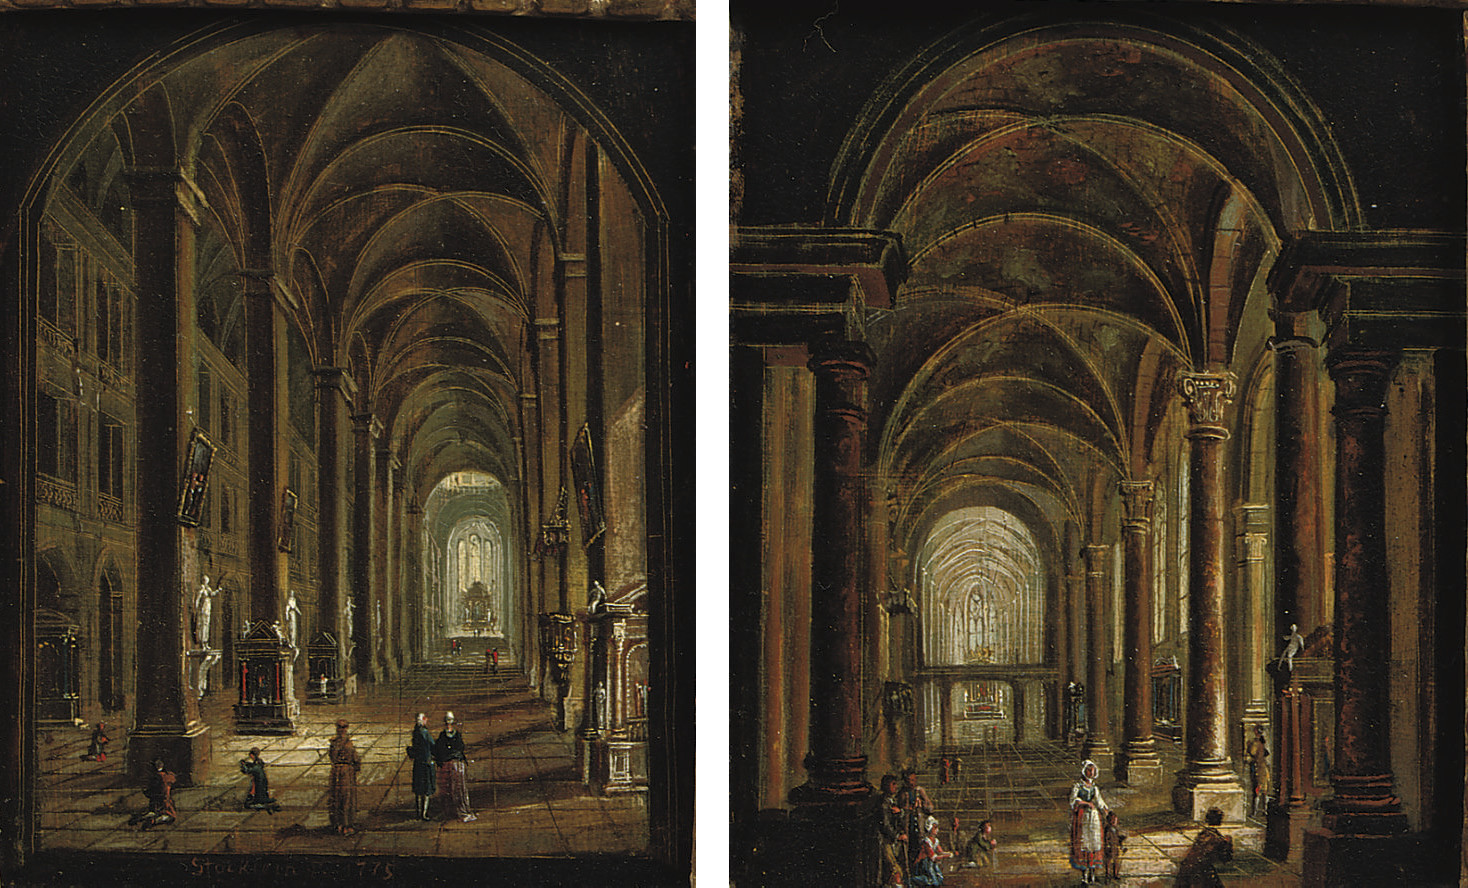 A church interior with figures praying and conversing and; A church interior with figures praying and a passing mother with child